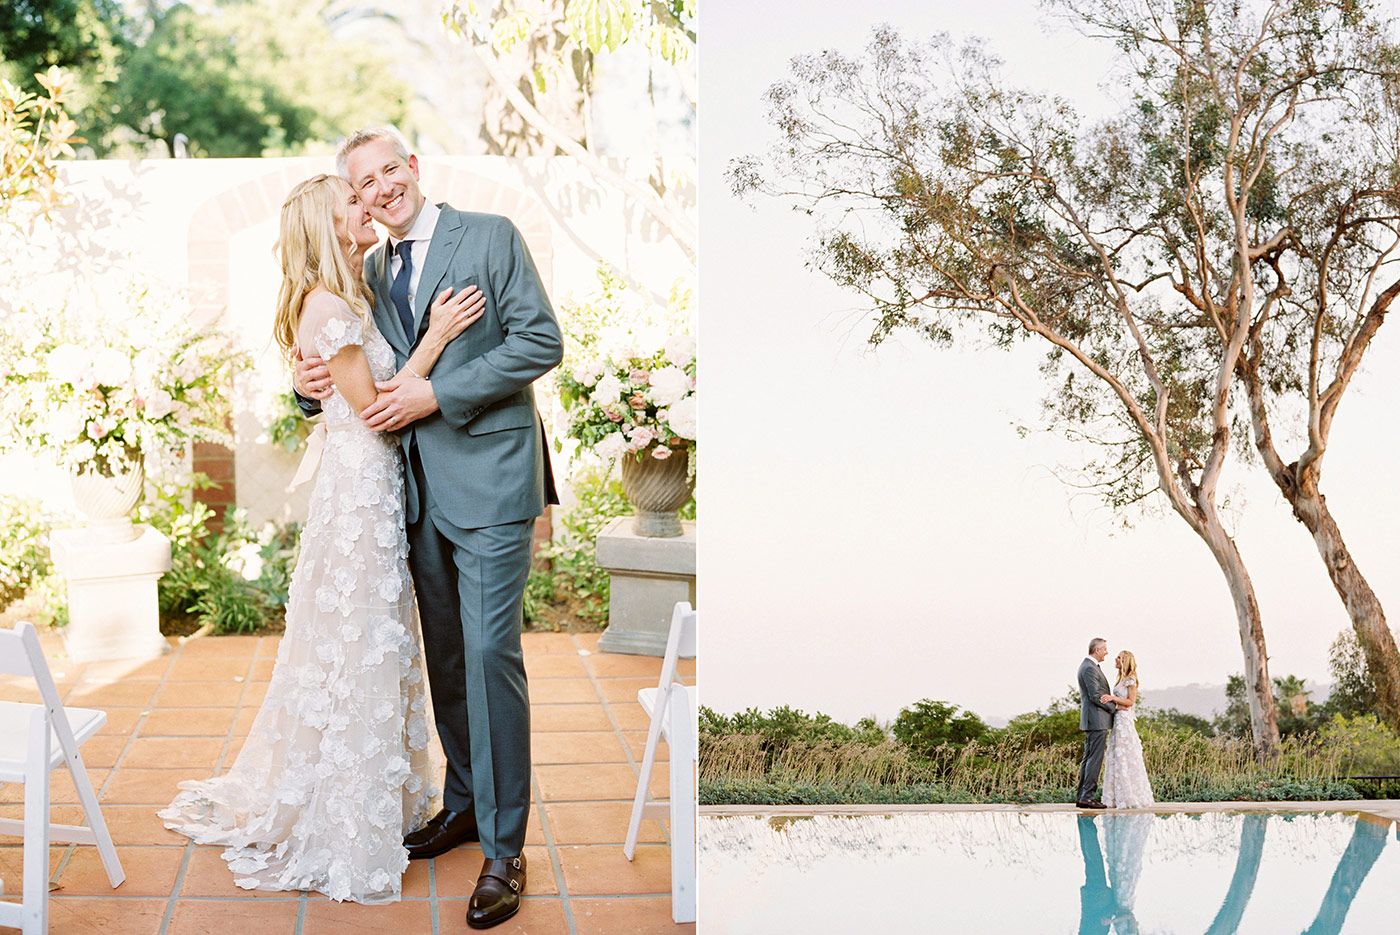 Belmond El Encanto Santa Barbara Film Wedding Photographer